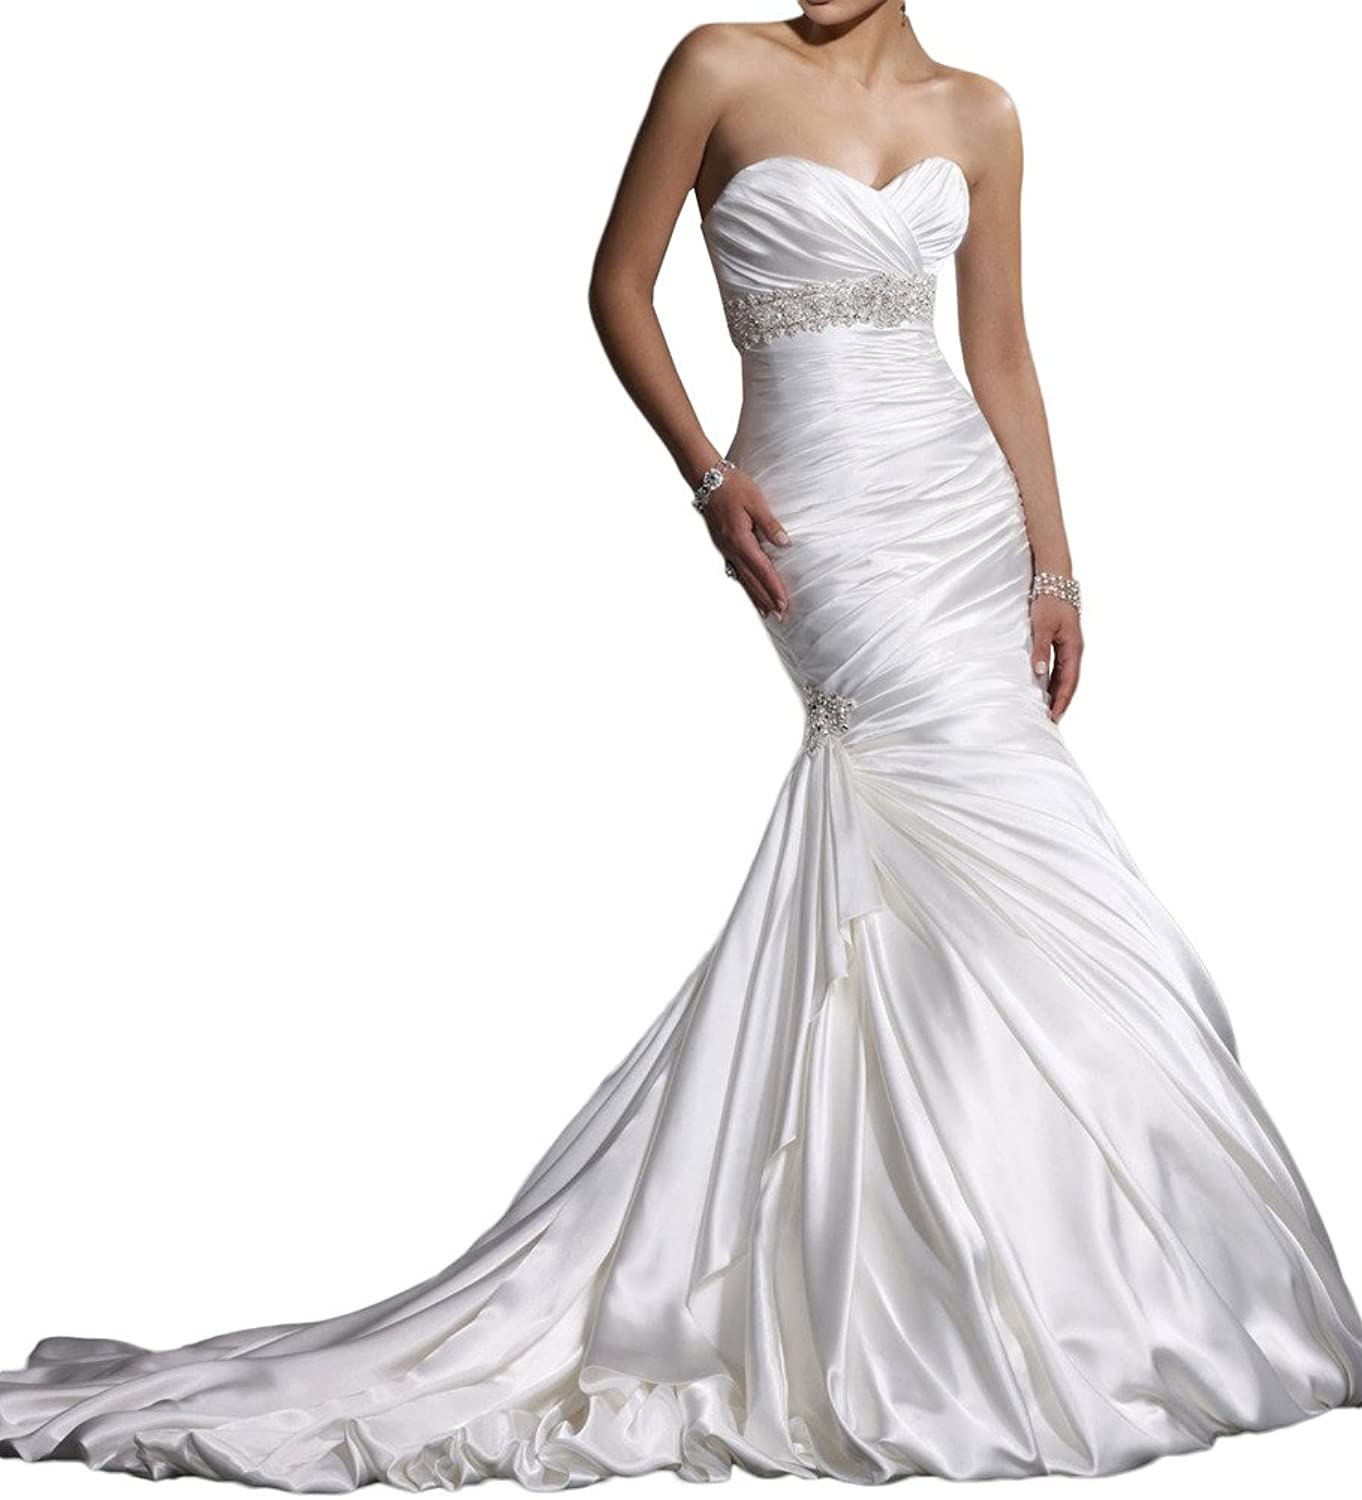 Avril Dress Mermaid Strapless Sweetheart Cathedral Beading Wedding PromDress